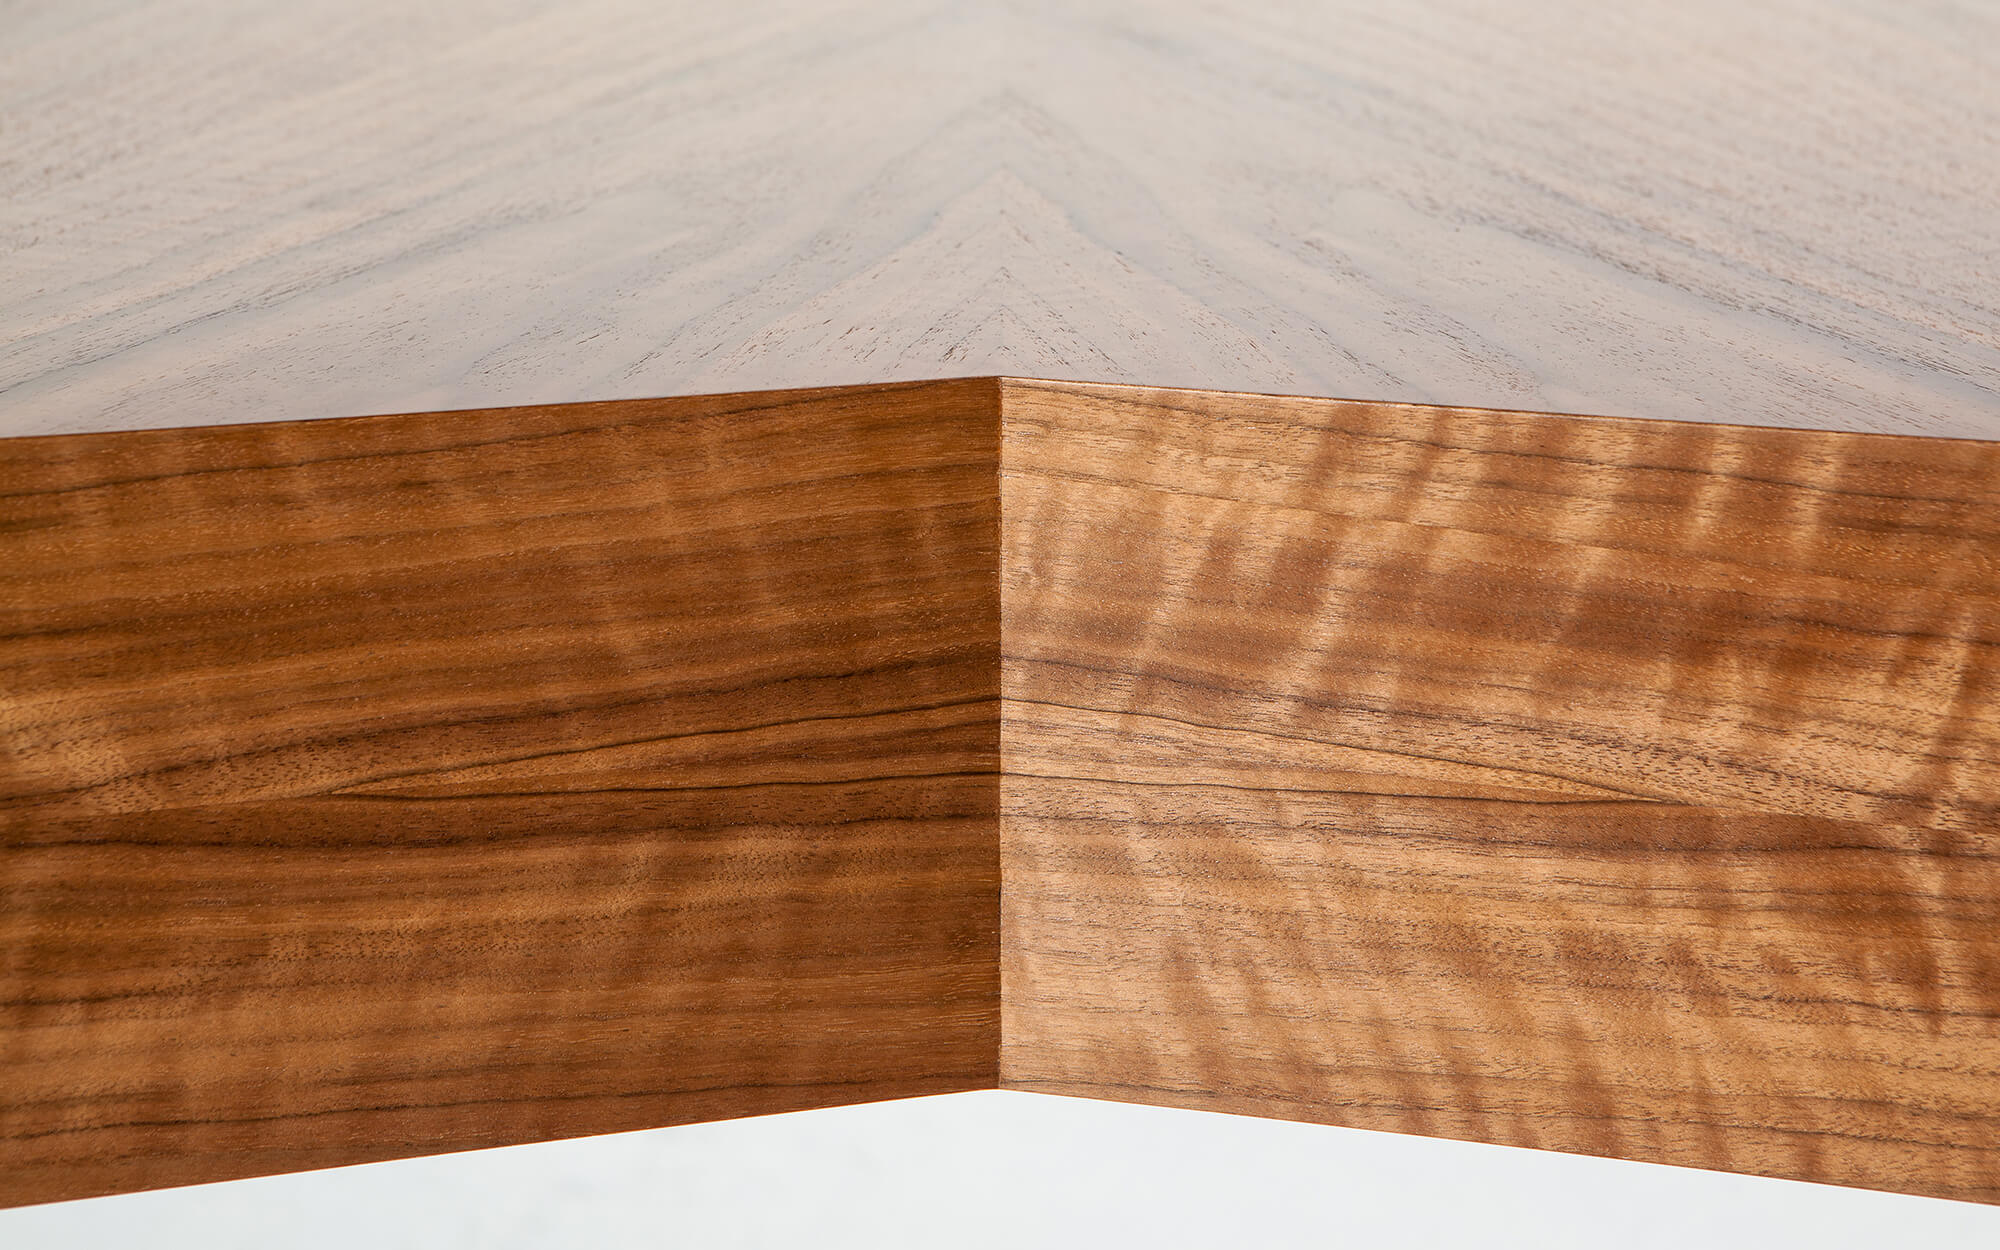 Detail of book matched veneers on custom made v-shaped desk